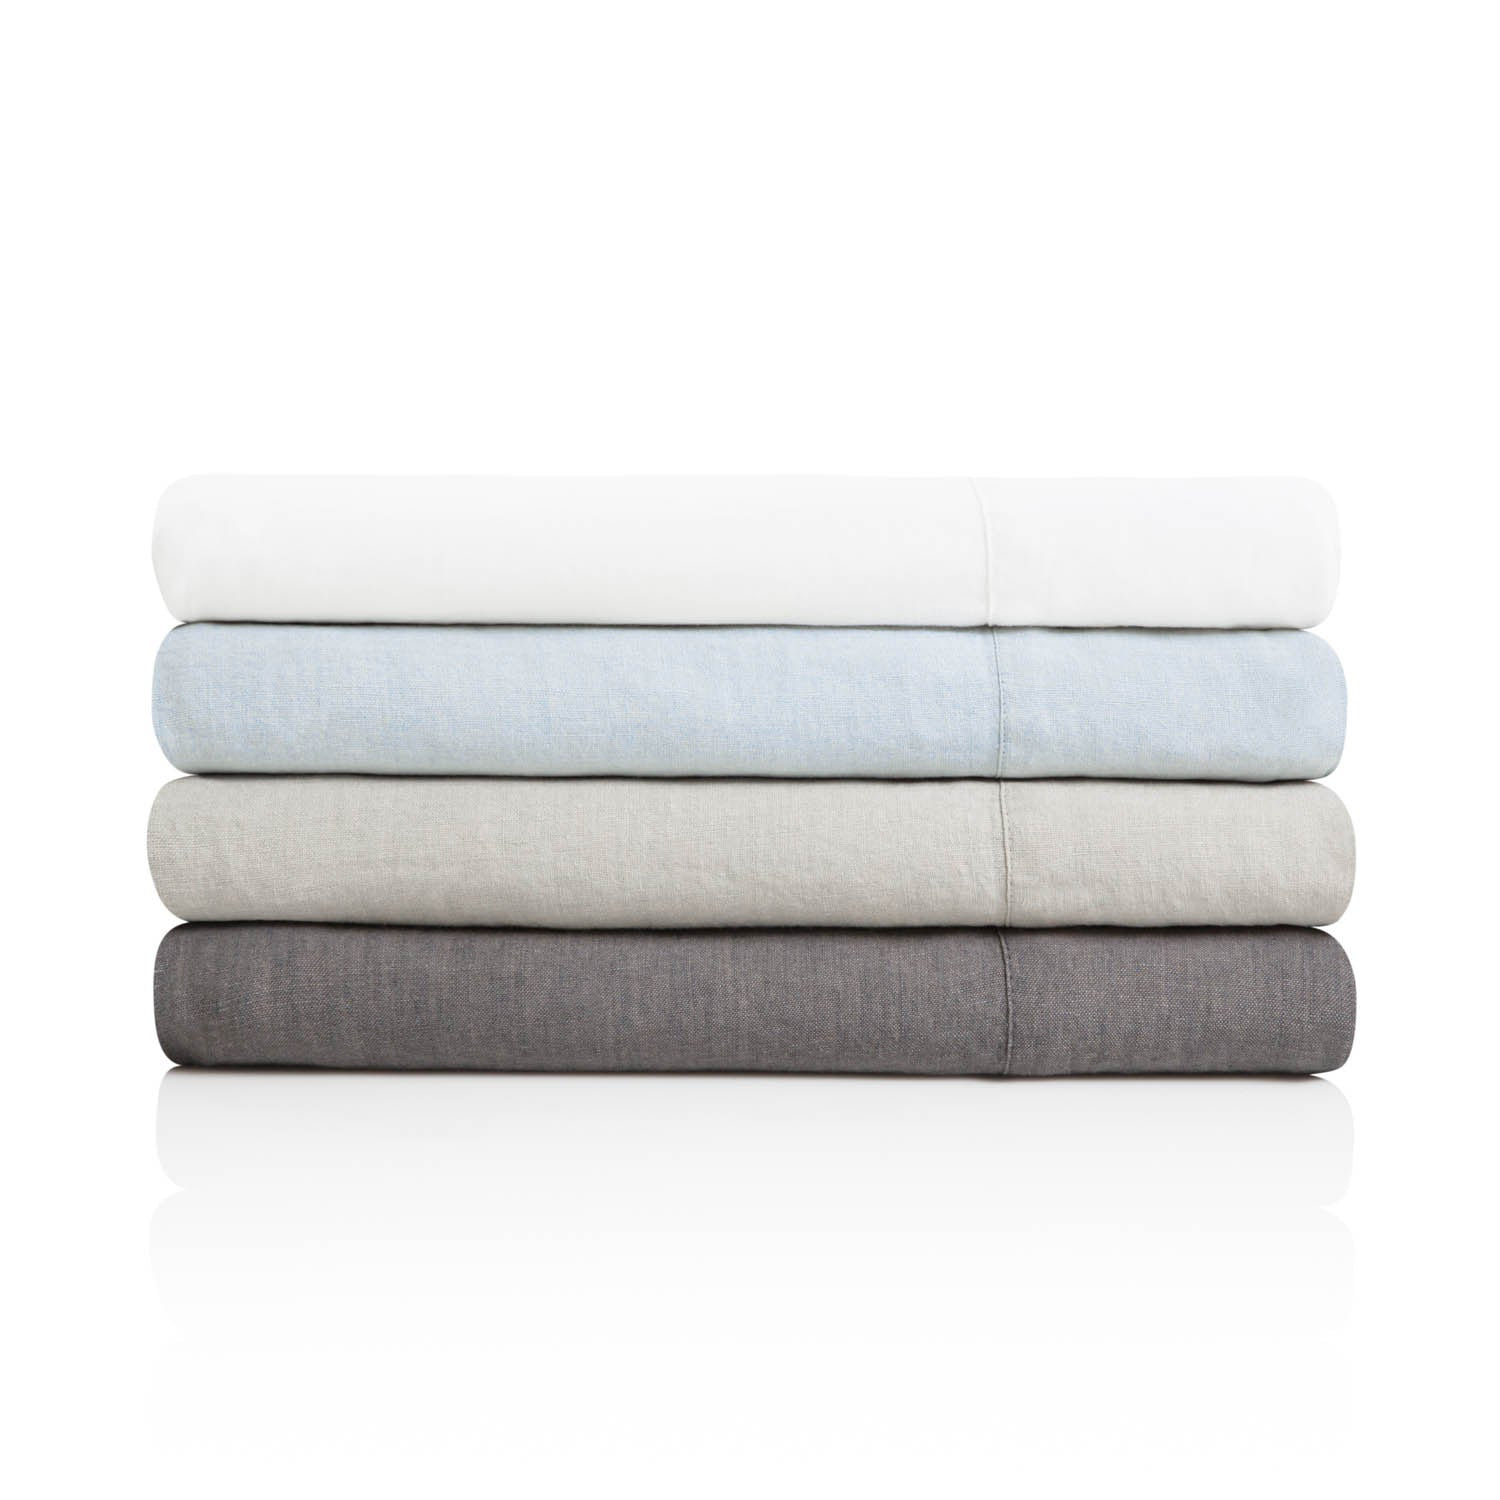 French Linen Sheets